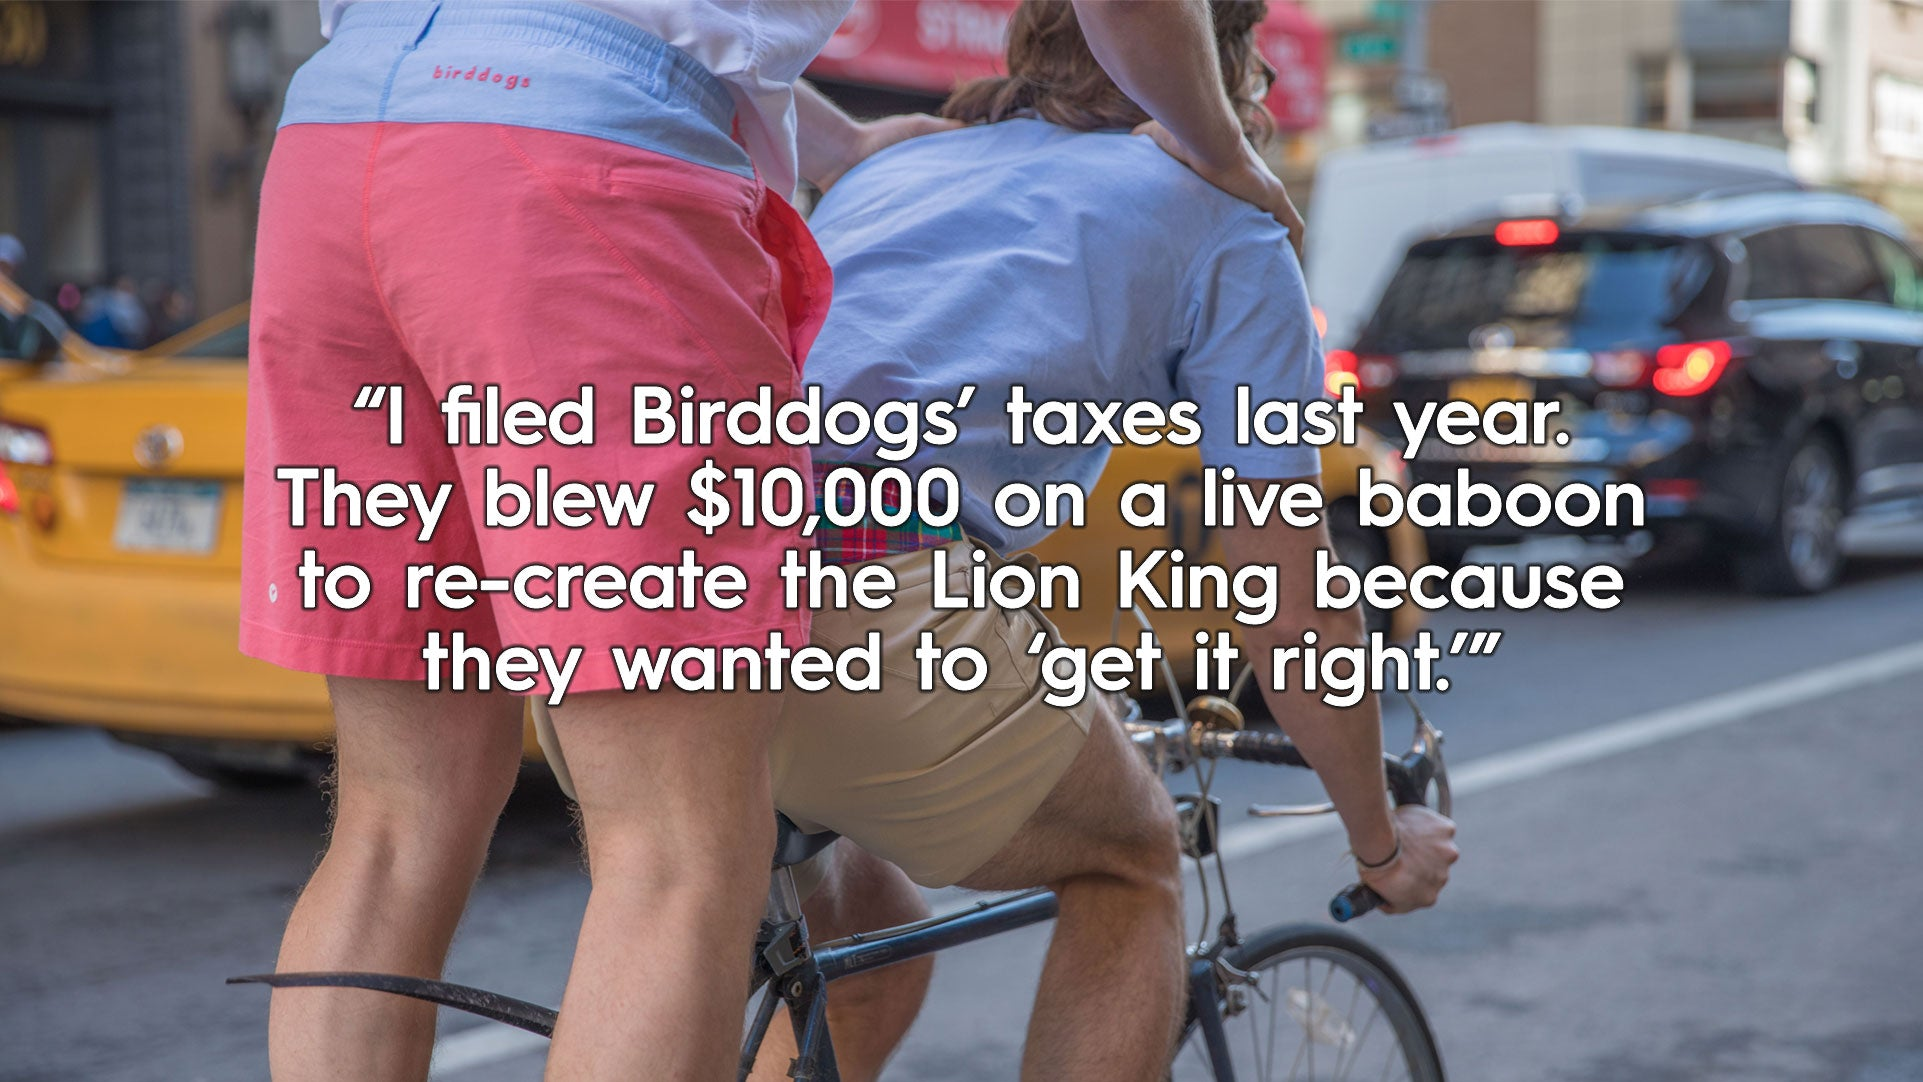 I filed Birddogs' taxes last year. They blew $10,000 on a live baboon to re-create the Lion King because they wanted to 'get it right'